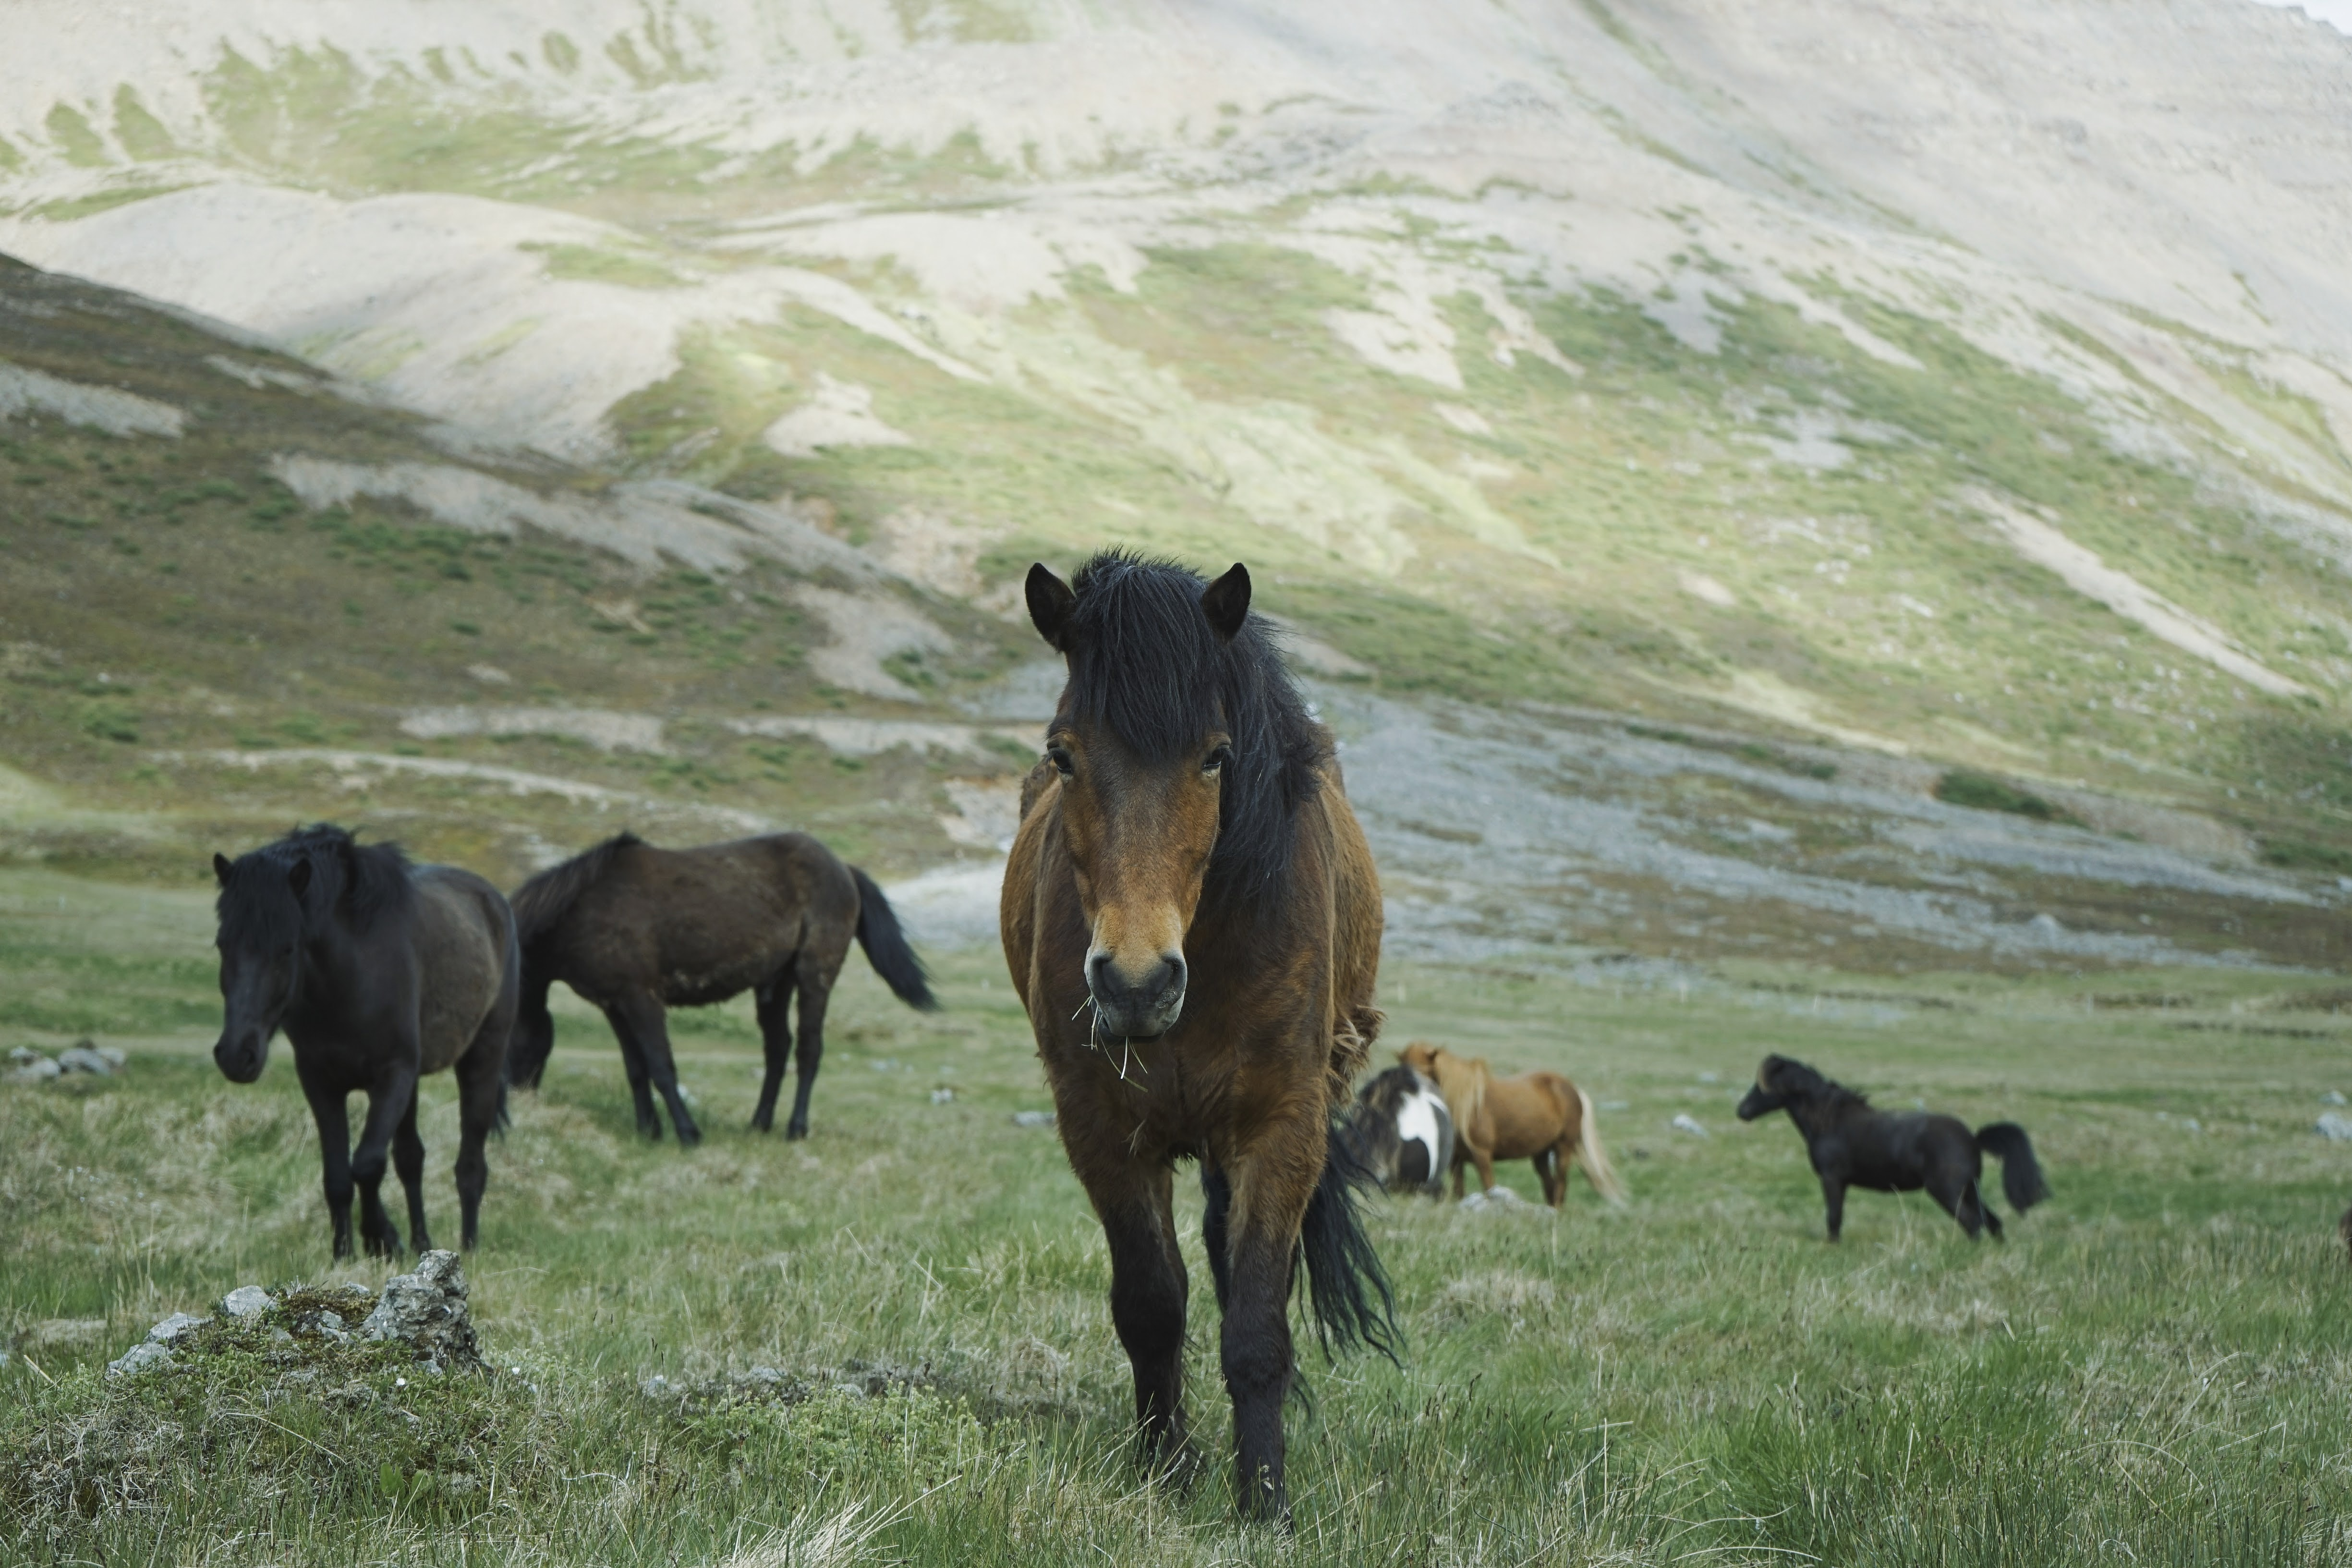 A herd of black and chestnut horses on a green pasture near a steep slope